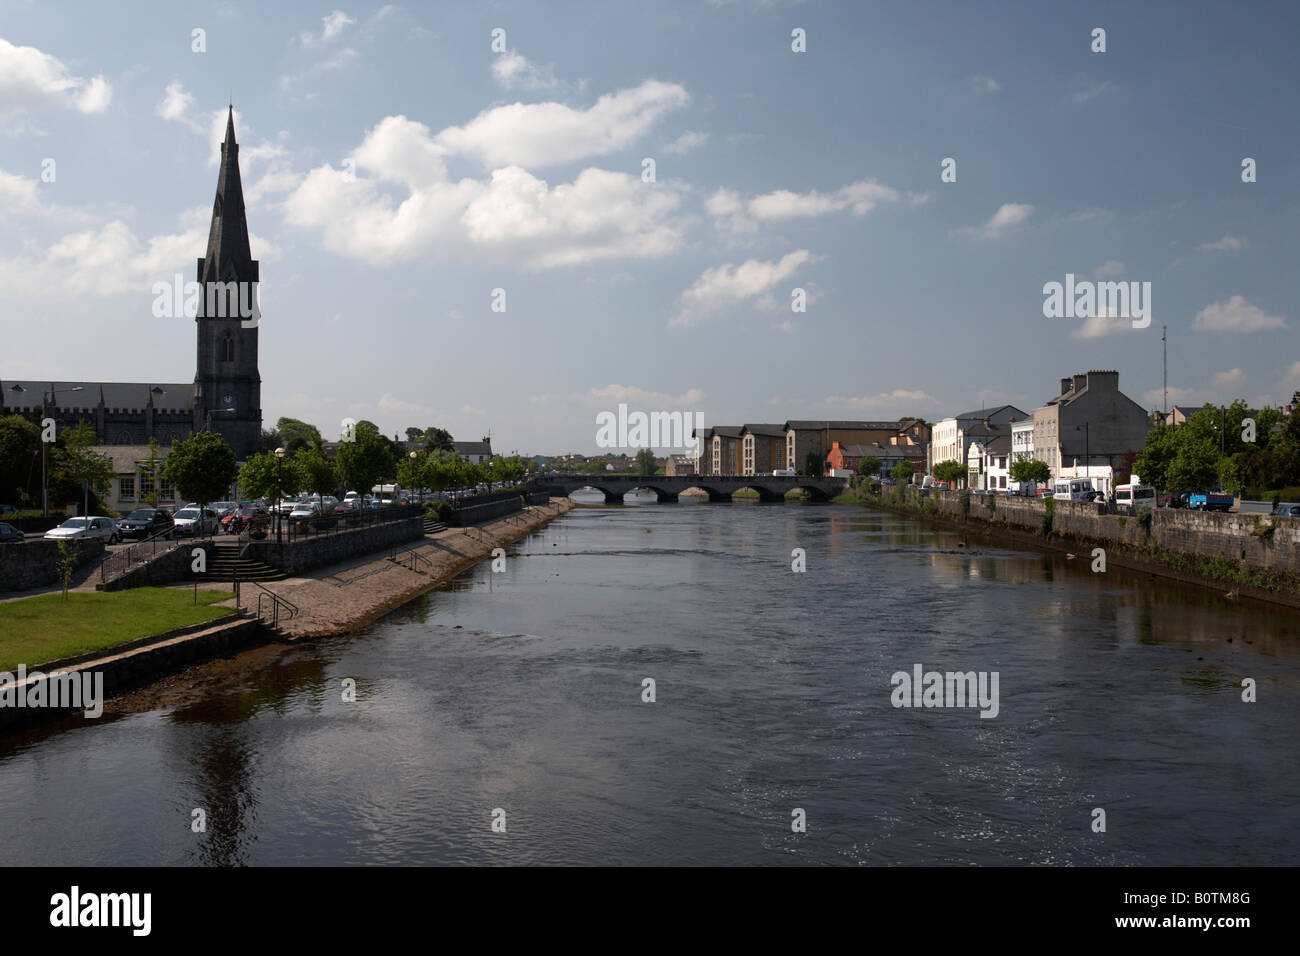 Ballina to Galway City Route - sil0.co.uk